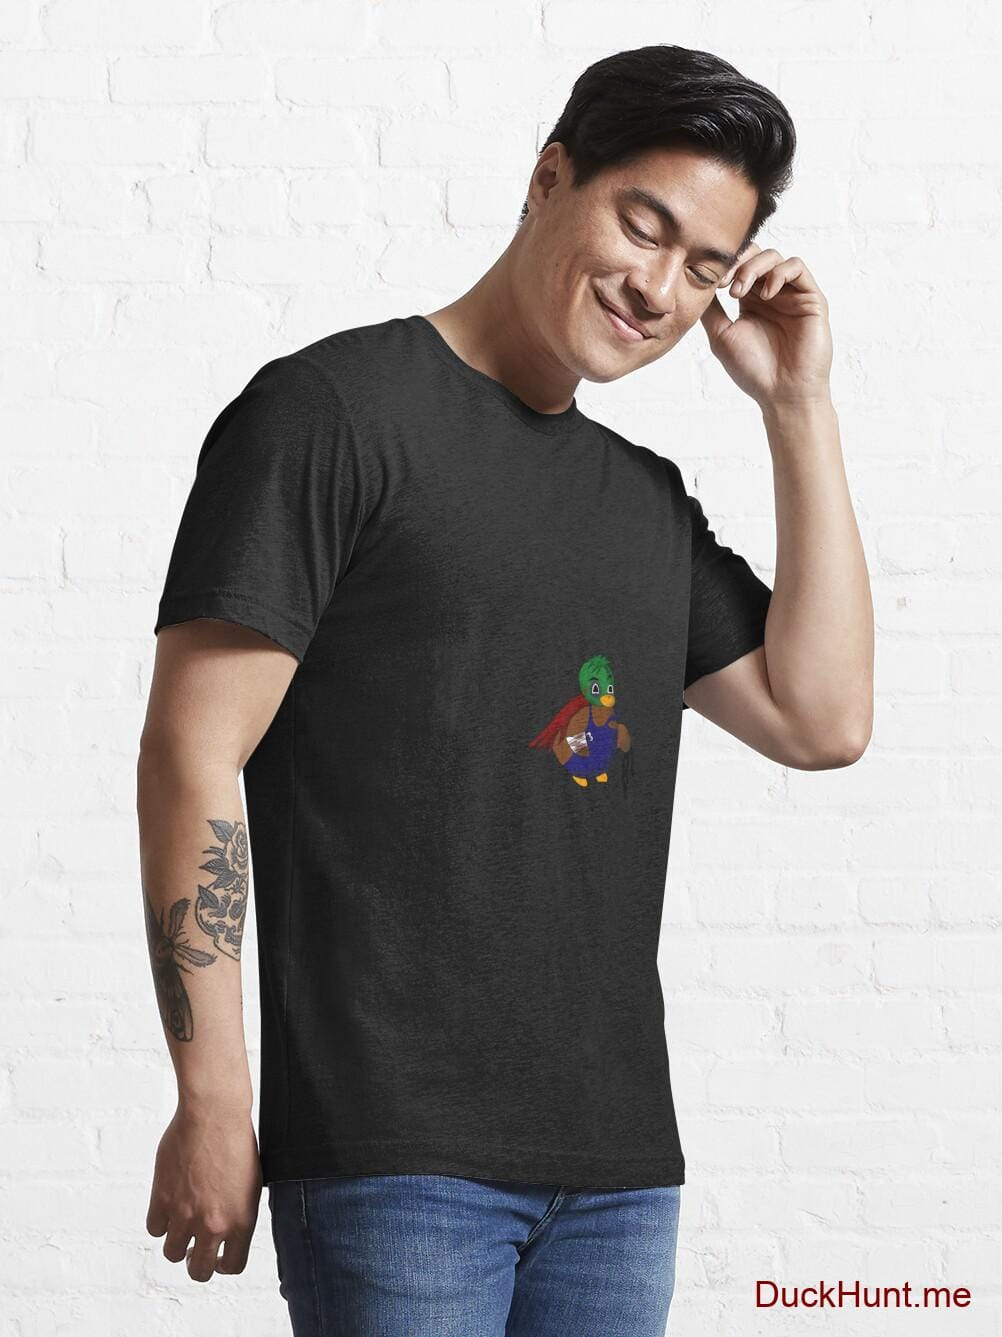 Dead DuckHunt Boss (smokeless) Black Essential T-Shirt (Front printed) alternative image 6